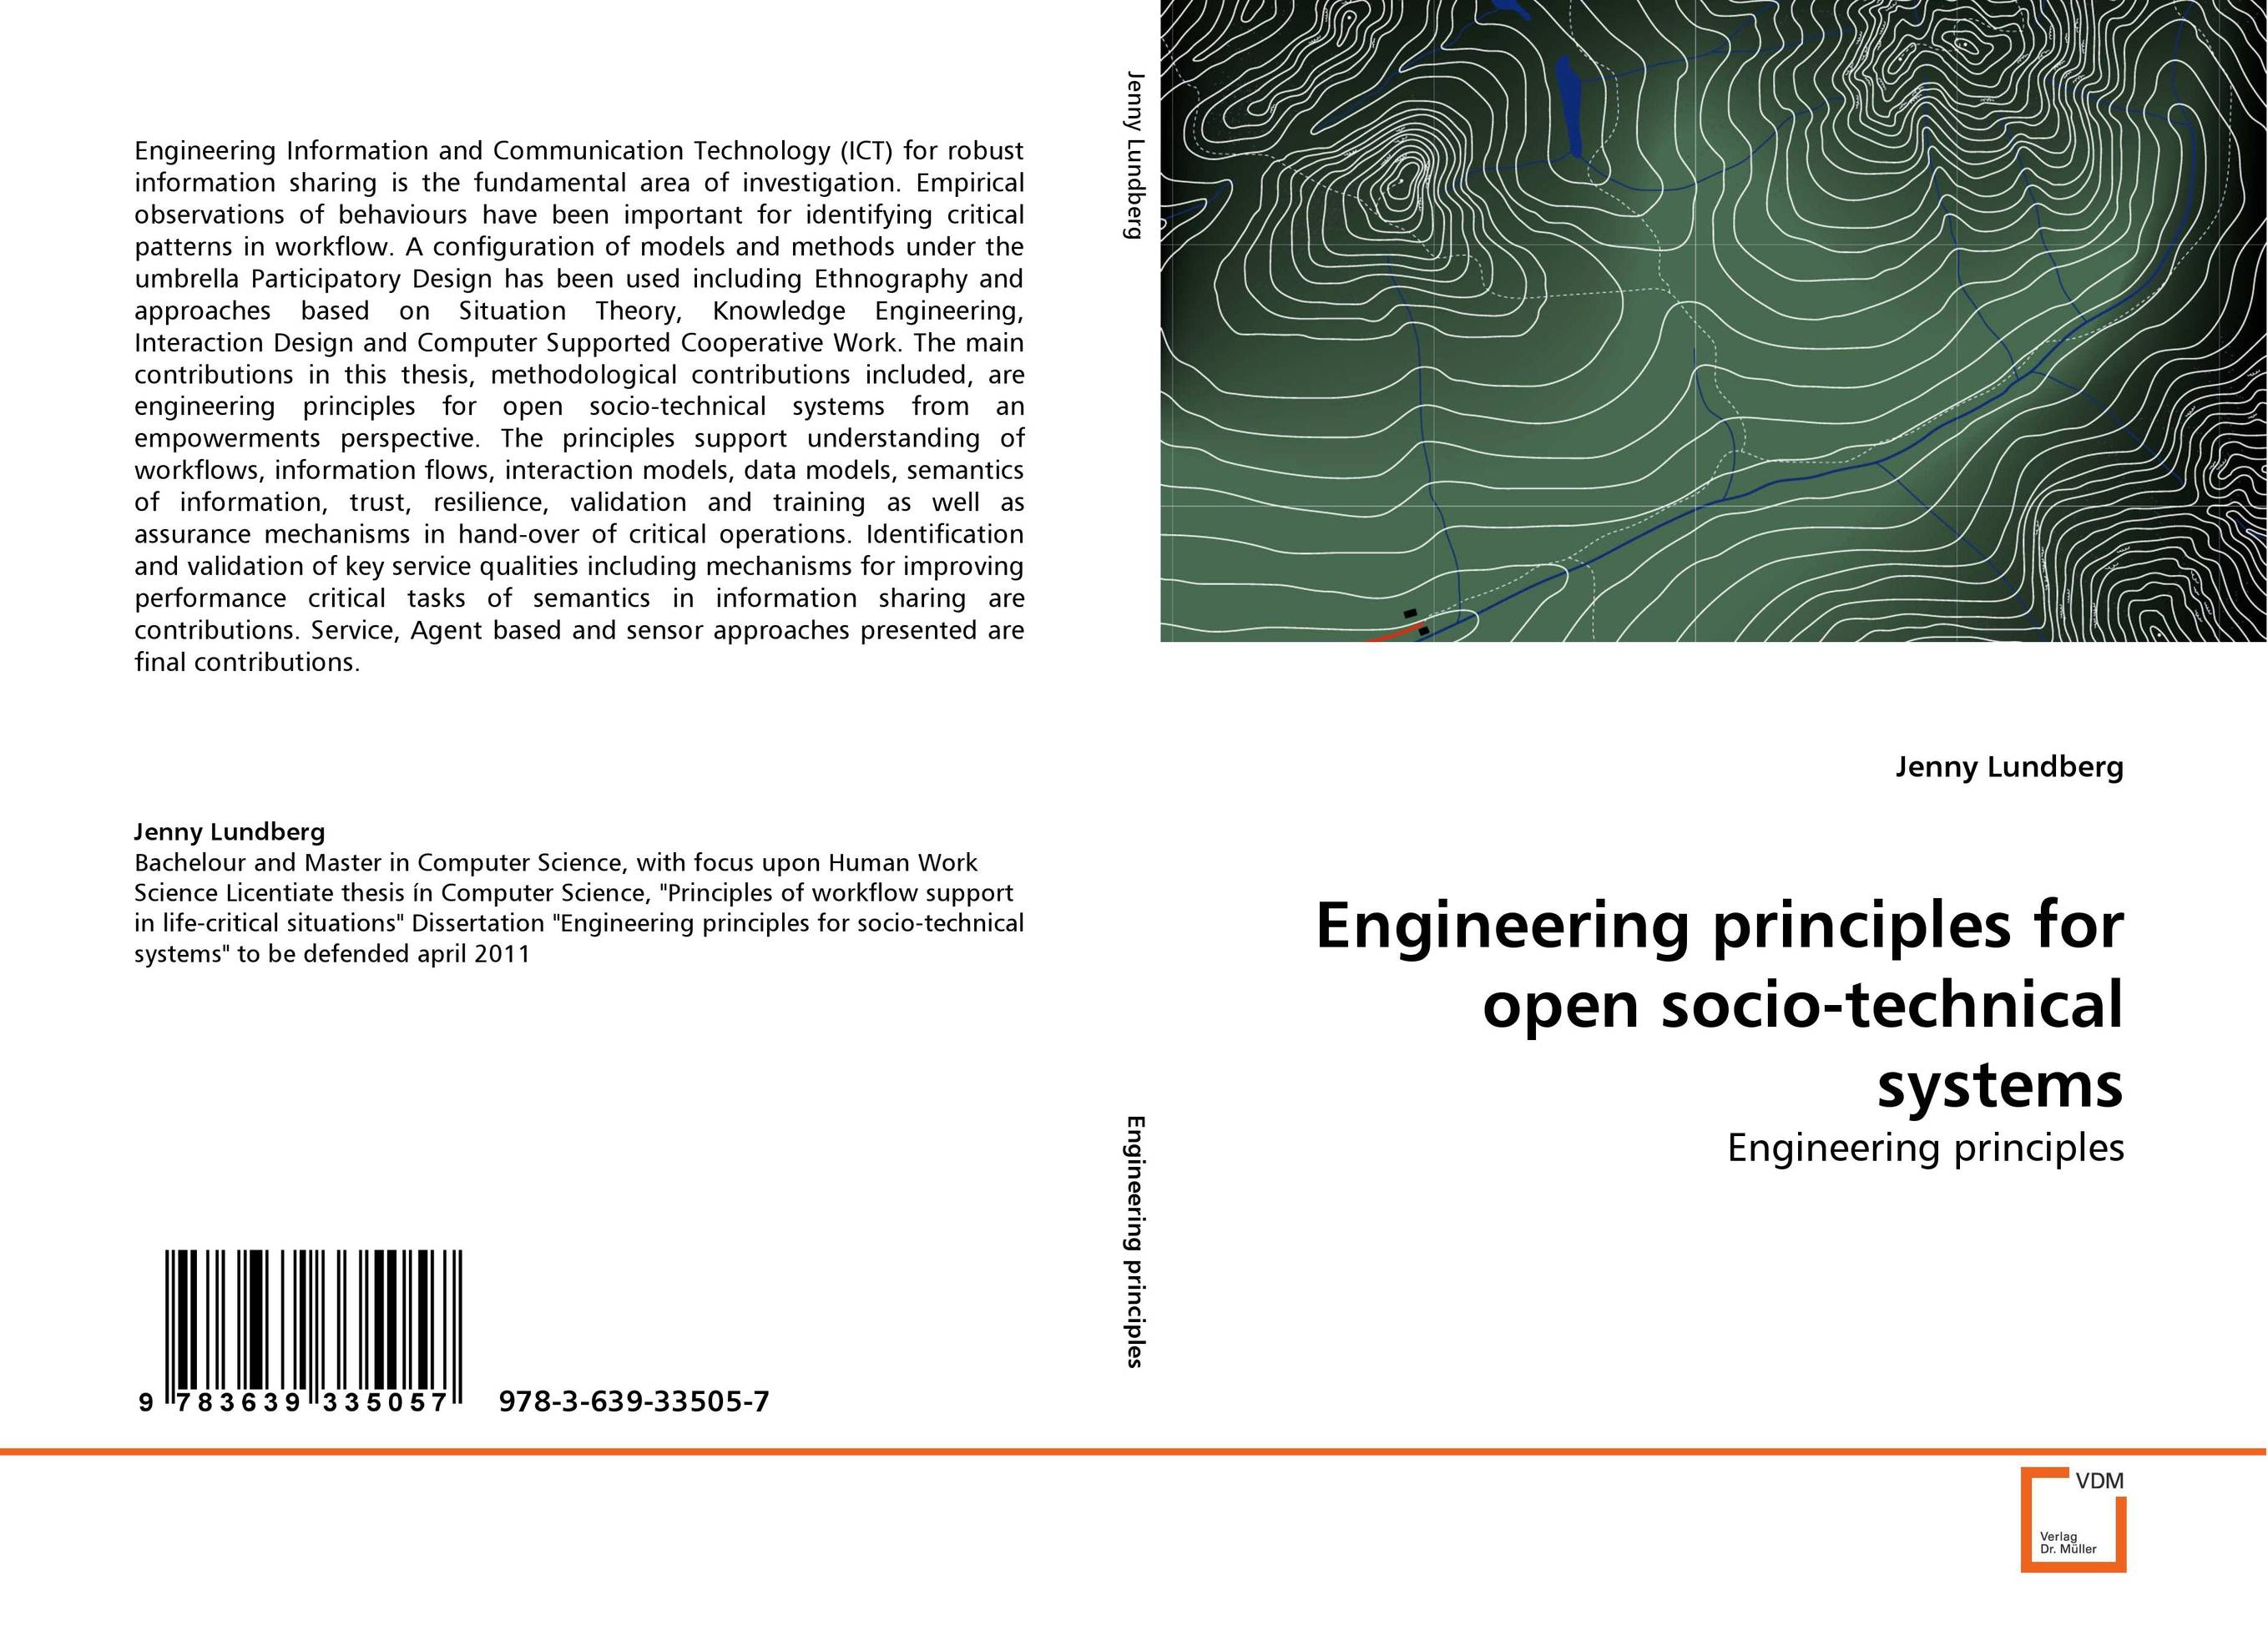 Engineering principles for open socio-technical systems the principles of automobile body design covering the fundamentals of open and closed passenger body design